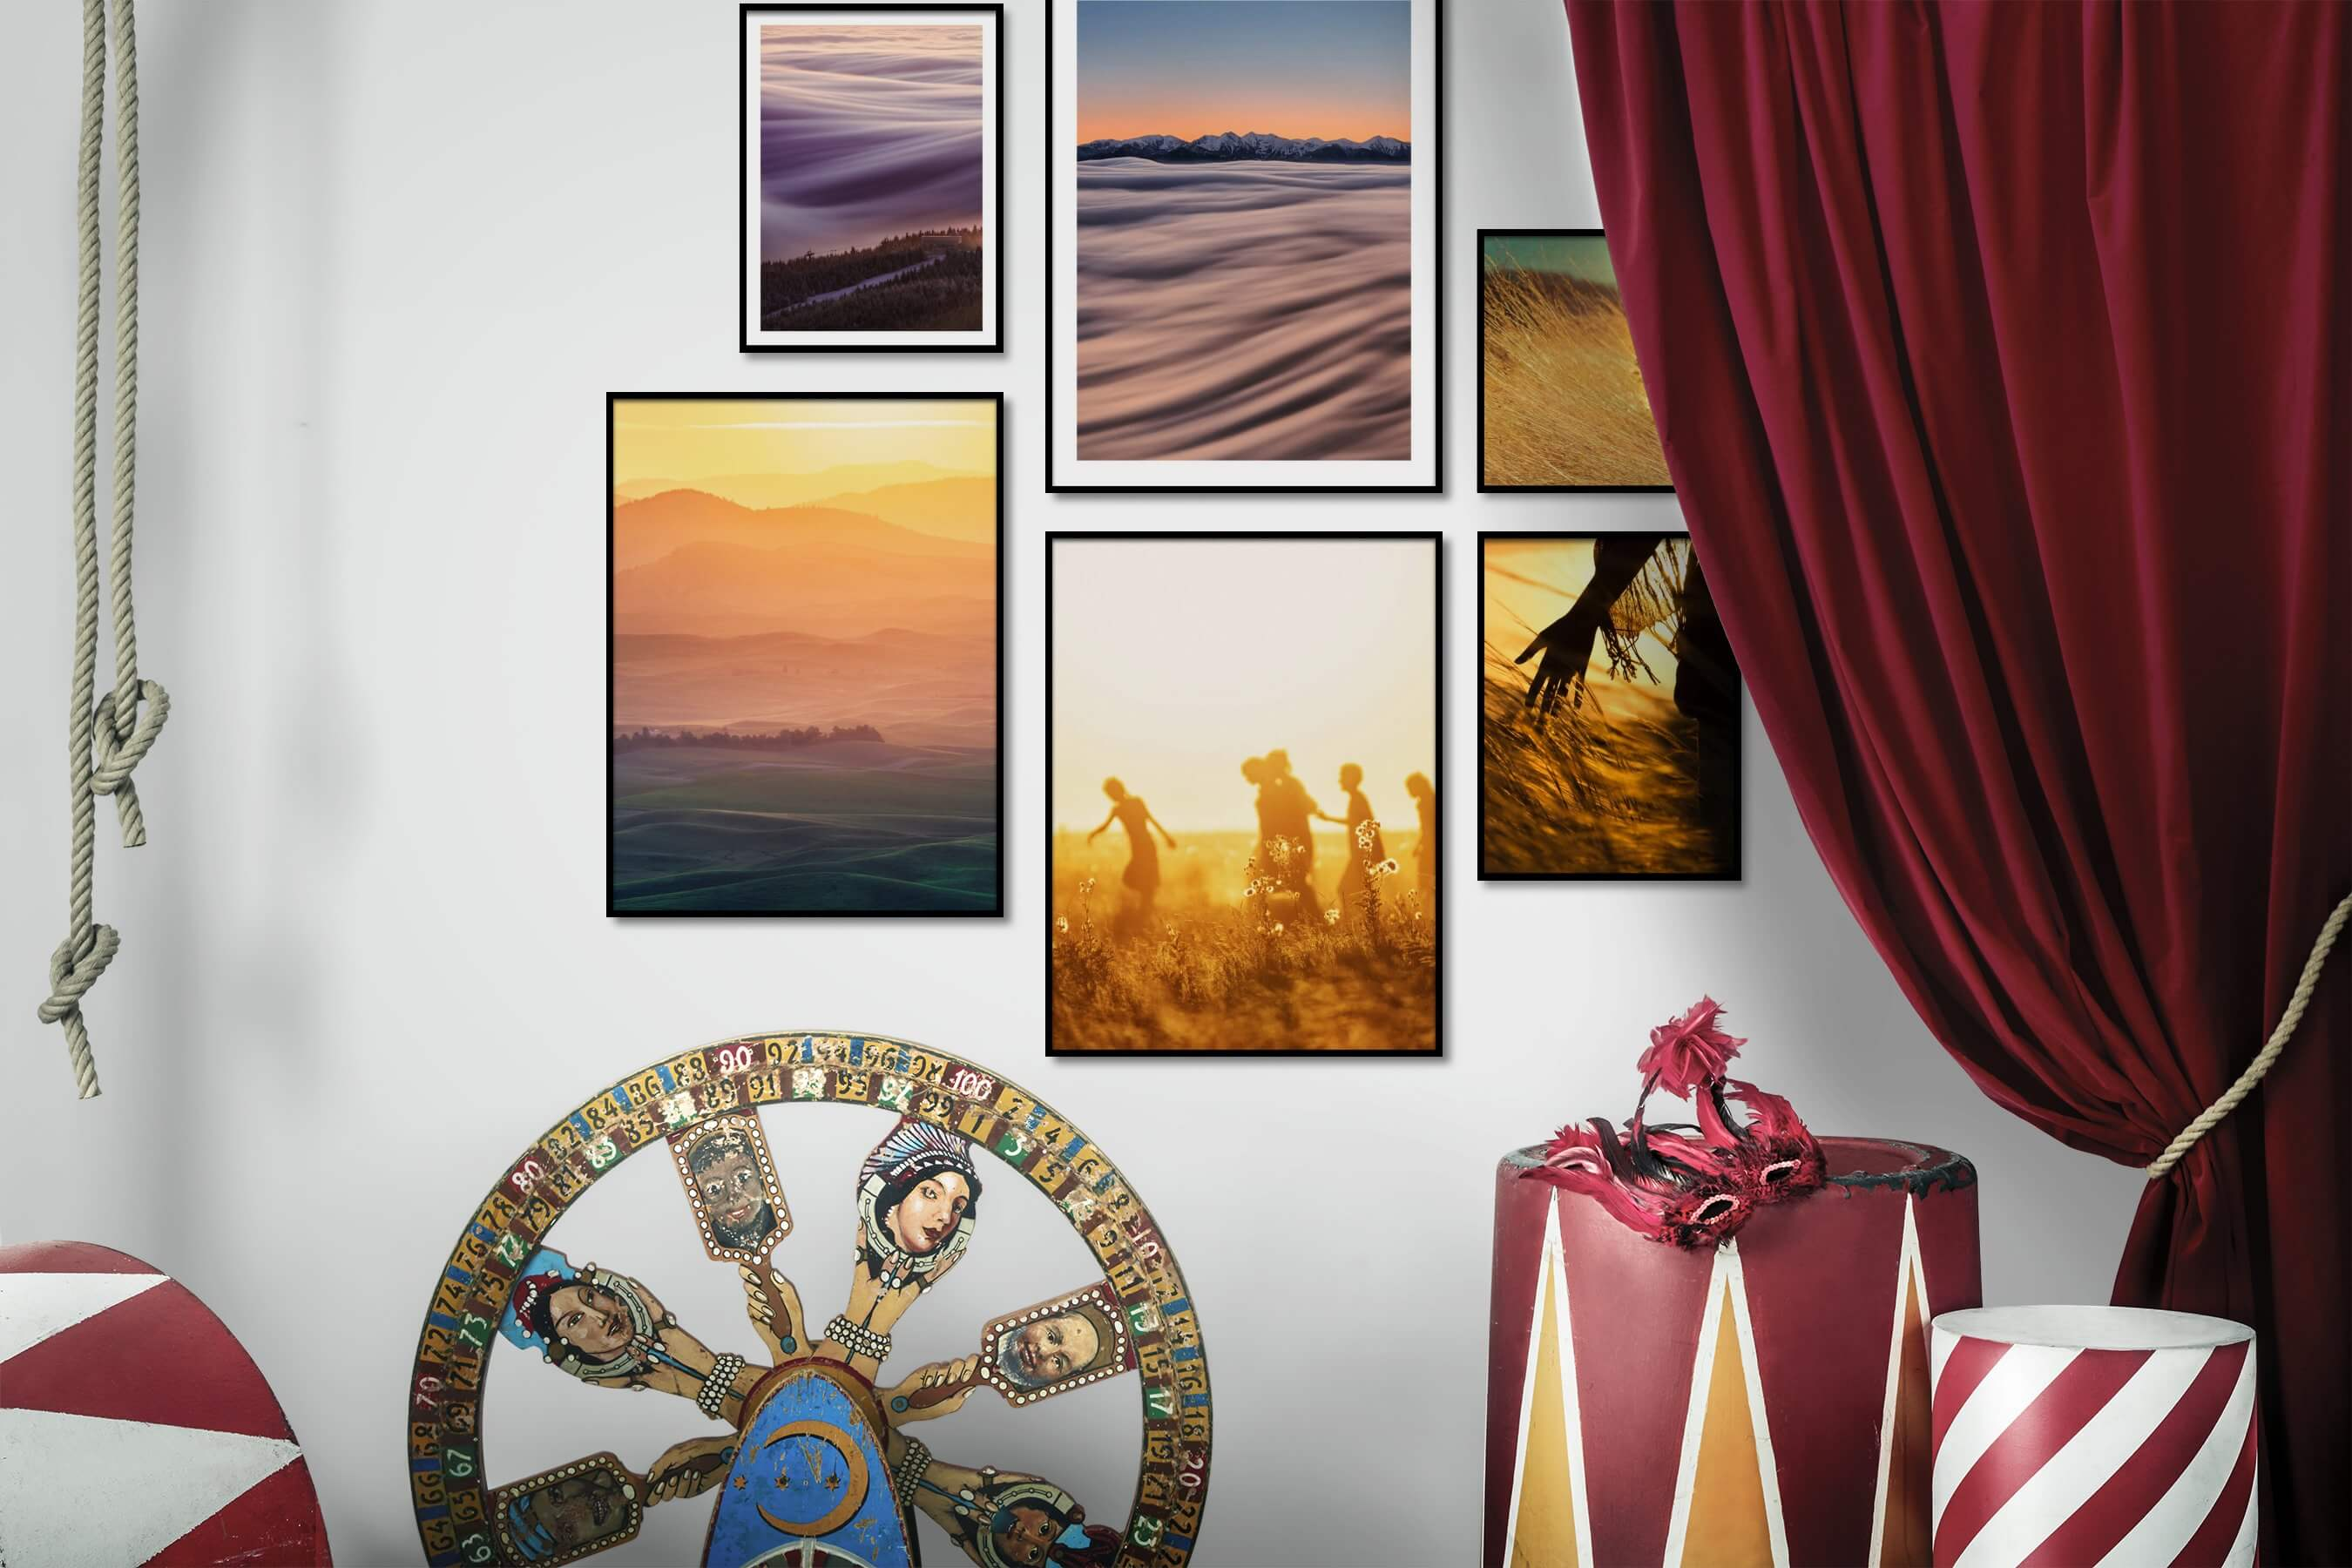 Gallery wall idea with six framed pictures arranged on a wall depicting For the Moderate, Nature, Mindfulness, and Country Life